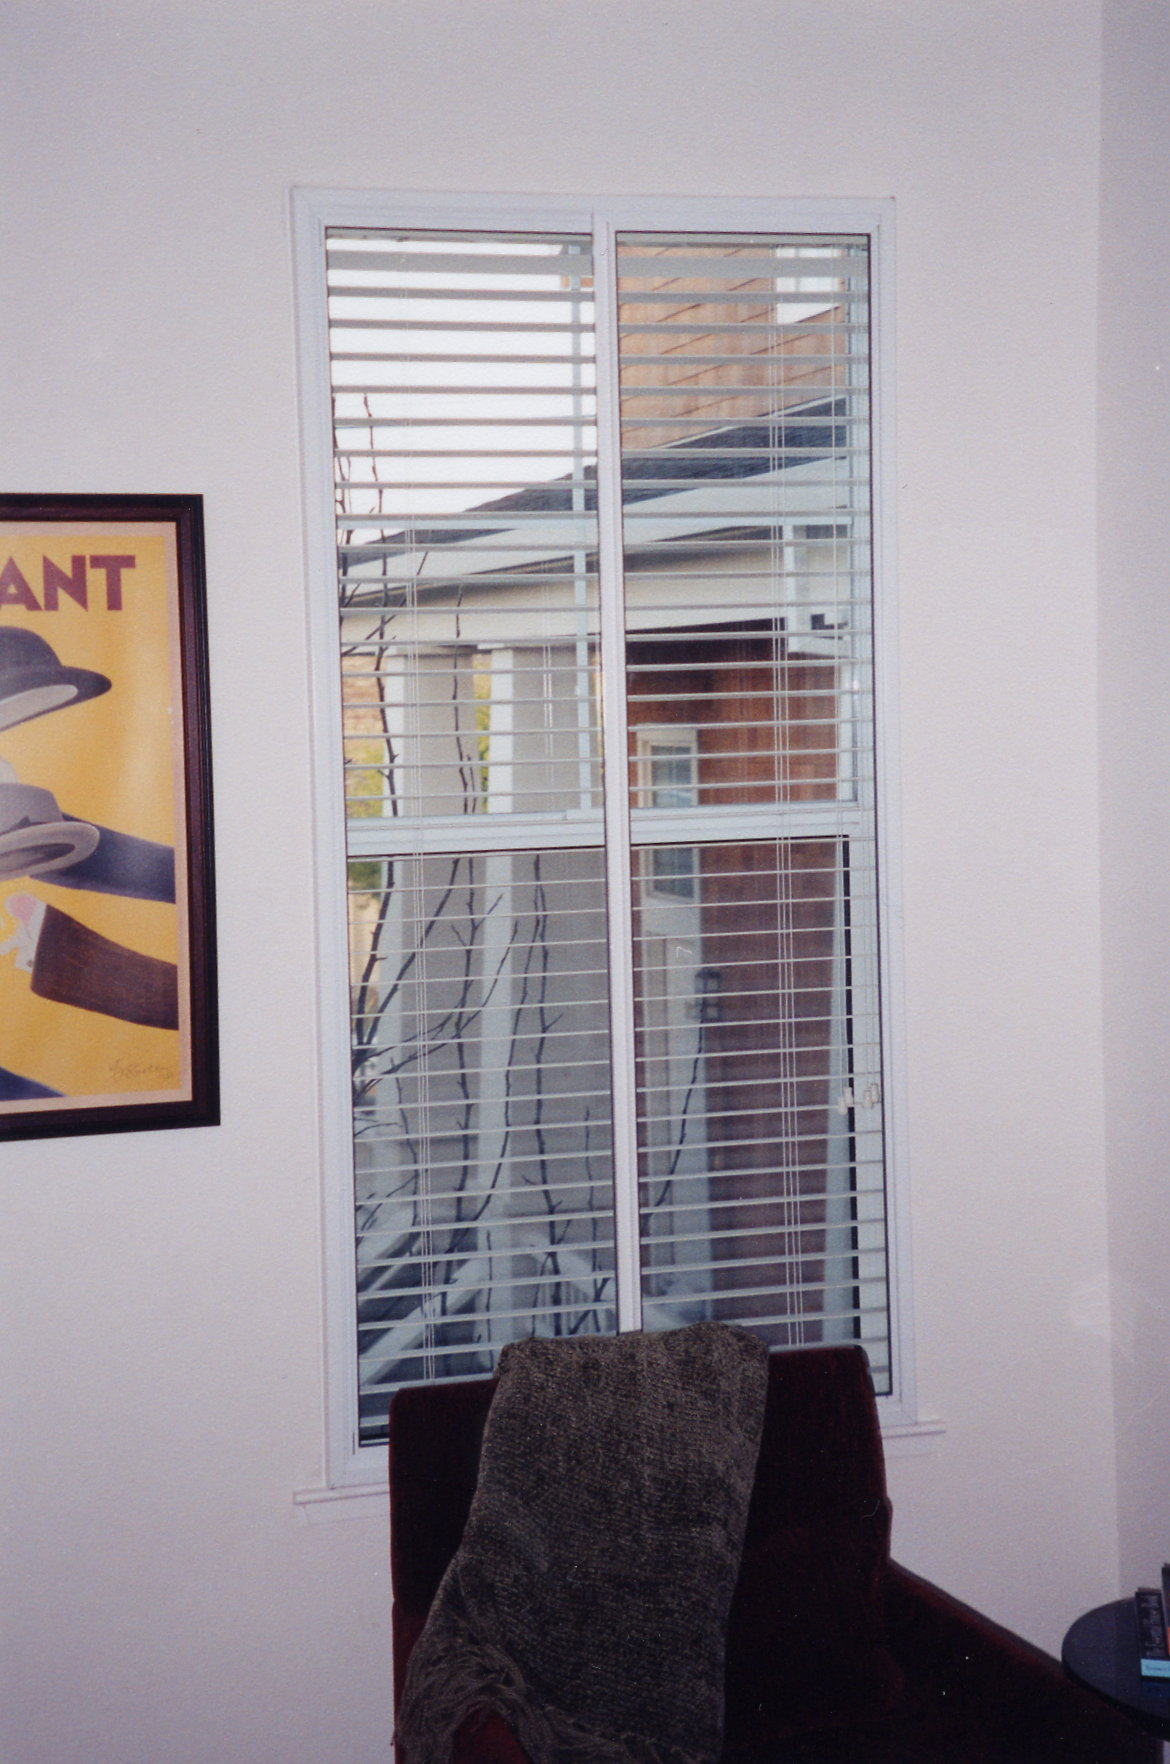 Soundproof windows - The Entire Window After Soundproof Window Installation